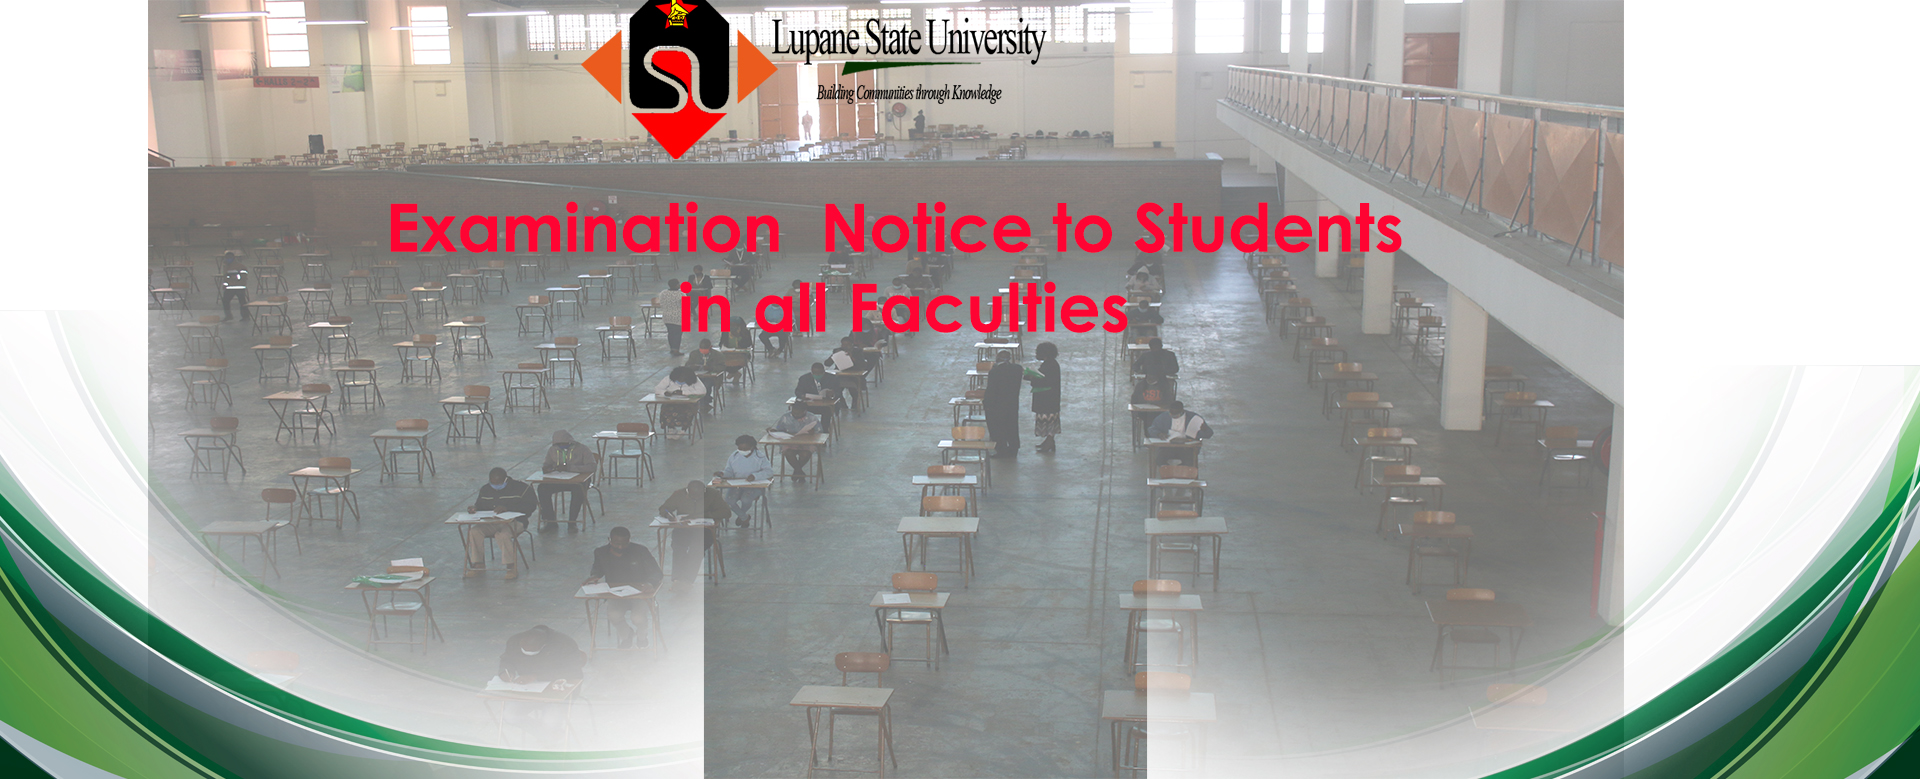 Examination Notice to Students in all Faculities